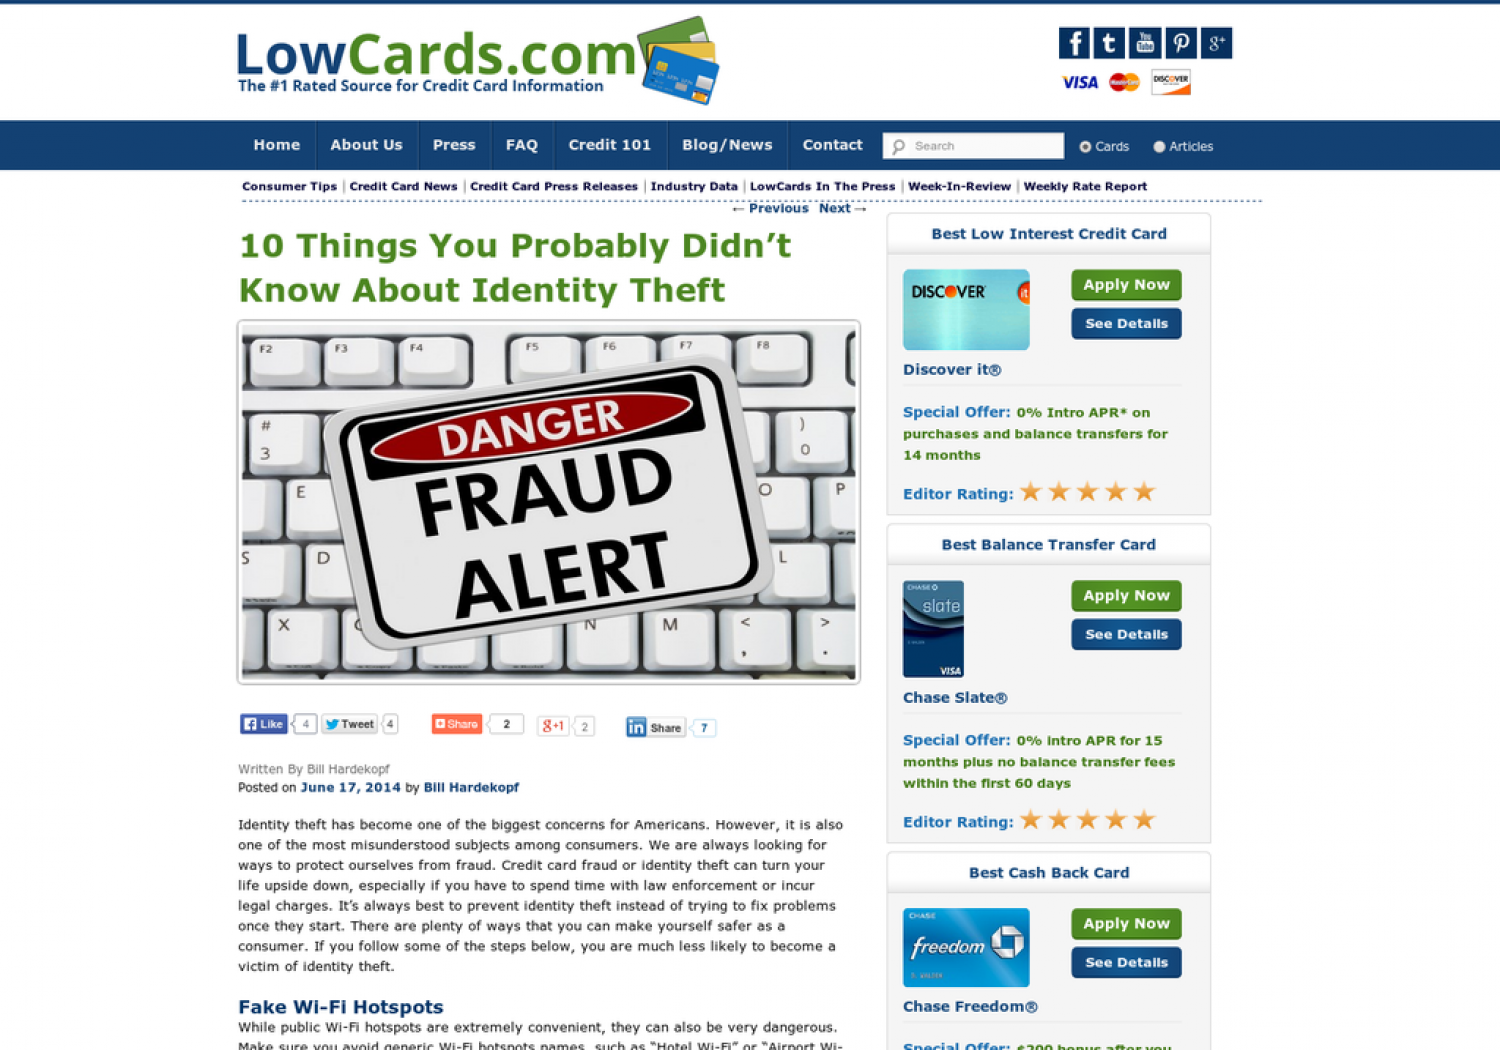 10 Things You Probably Didn't Know About Identity Theft Infographic